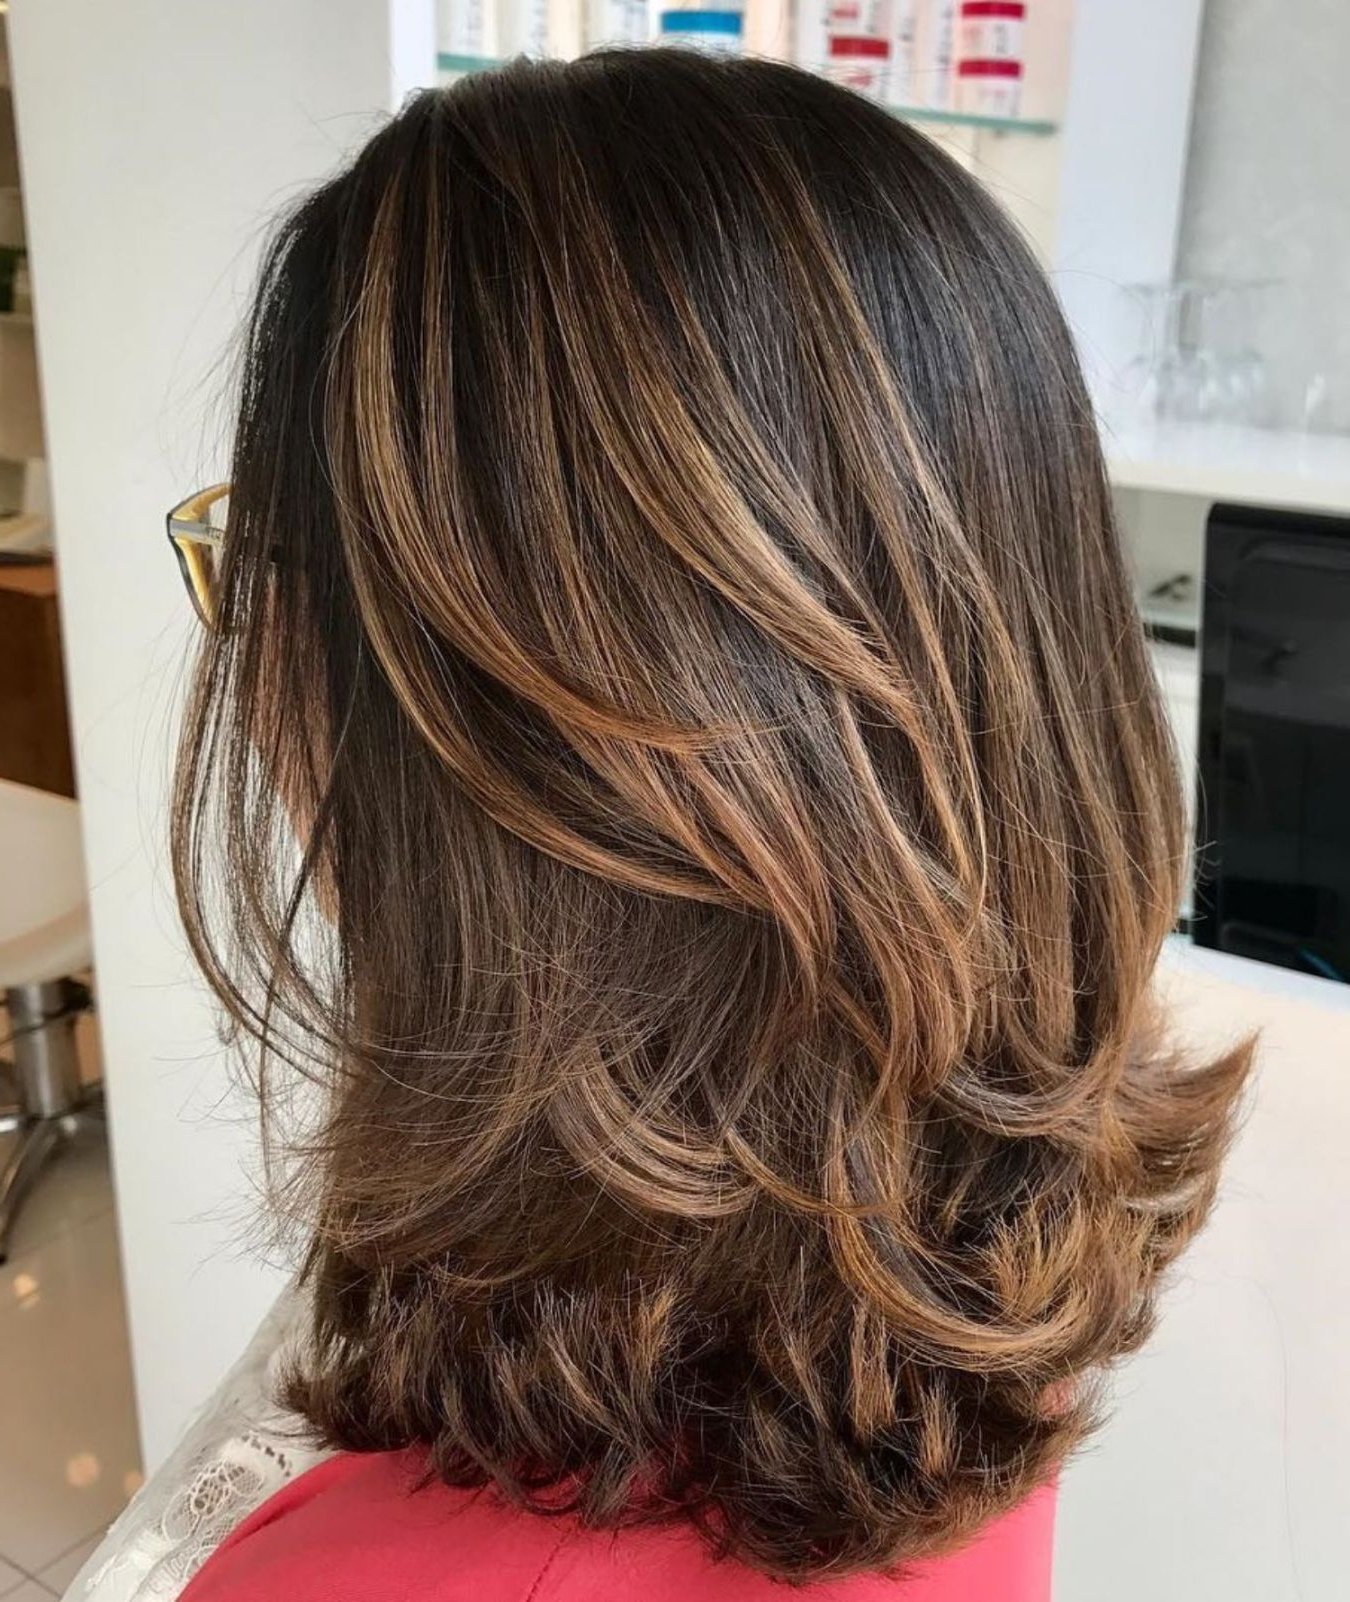 Hairstyles Pertaining To Most Current Swoopy Layers Hairstyles For Mid Length Hair (View 3 of 20)